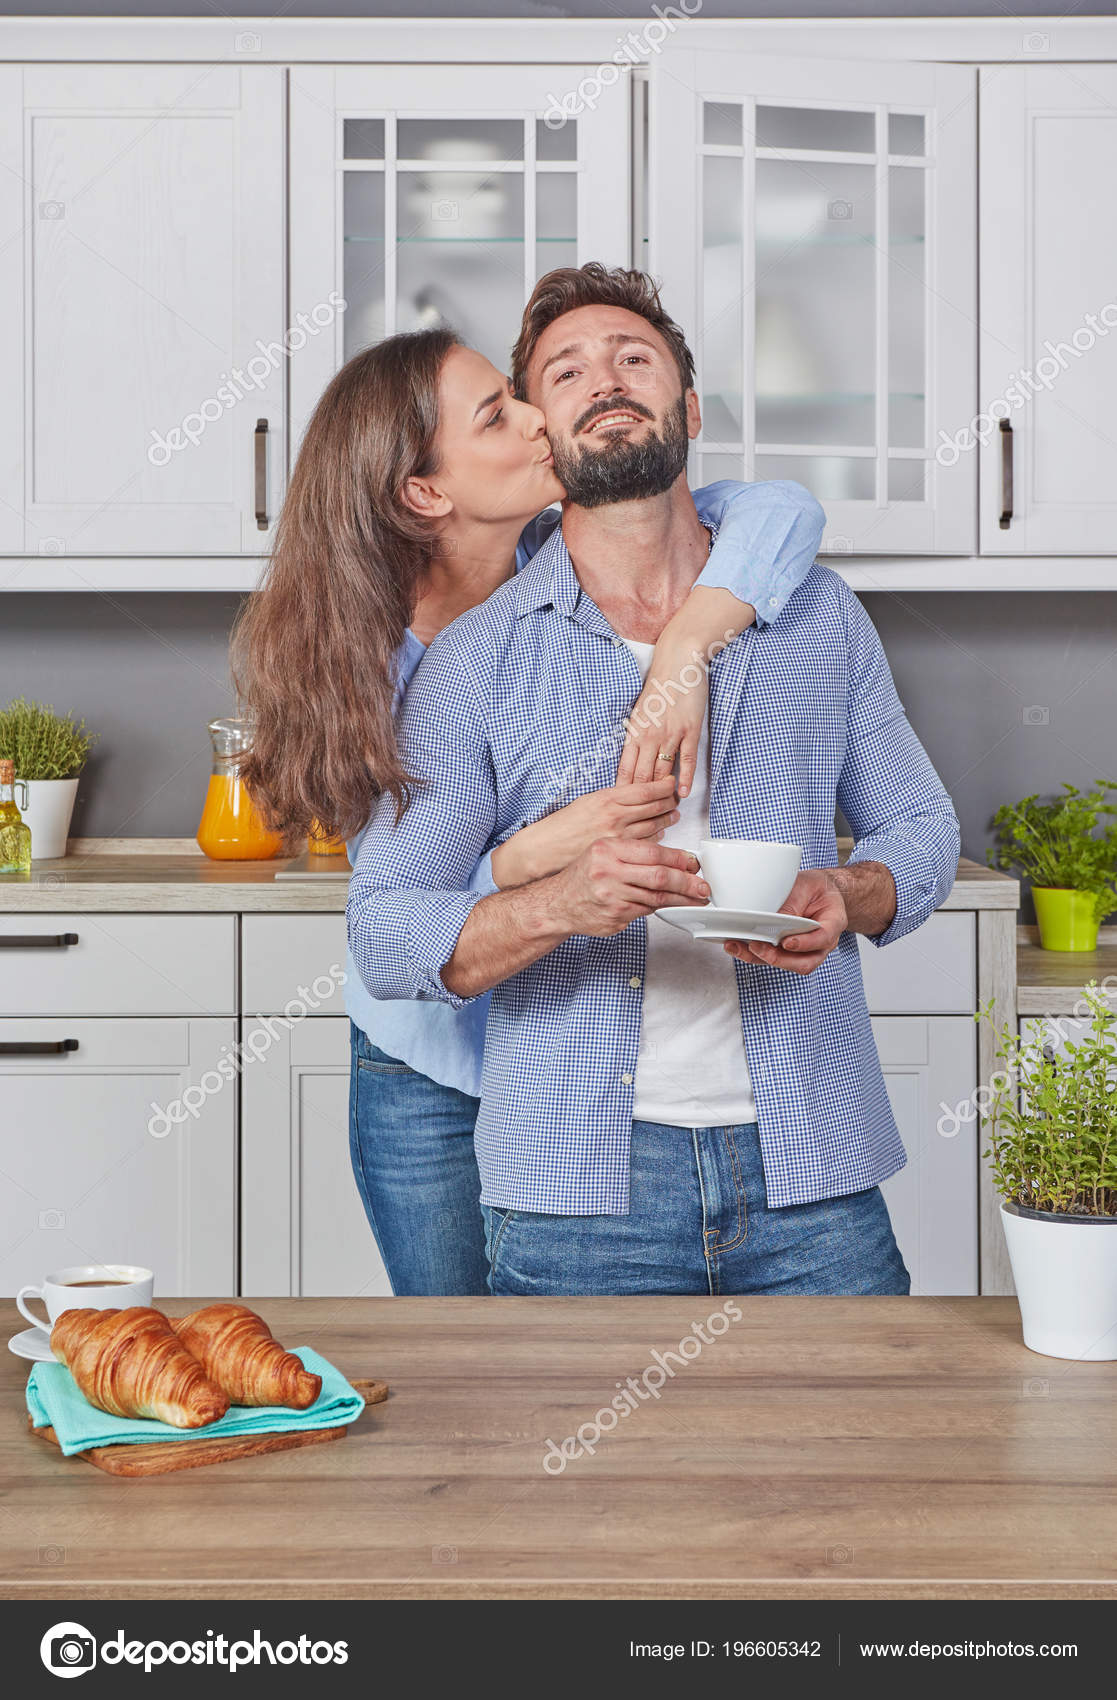 Young Couple Love Kitchen Enjoying Coffee Stock Photo Image By C Goir 196605342